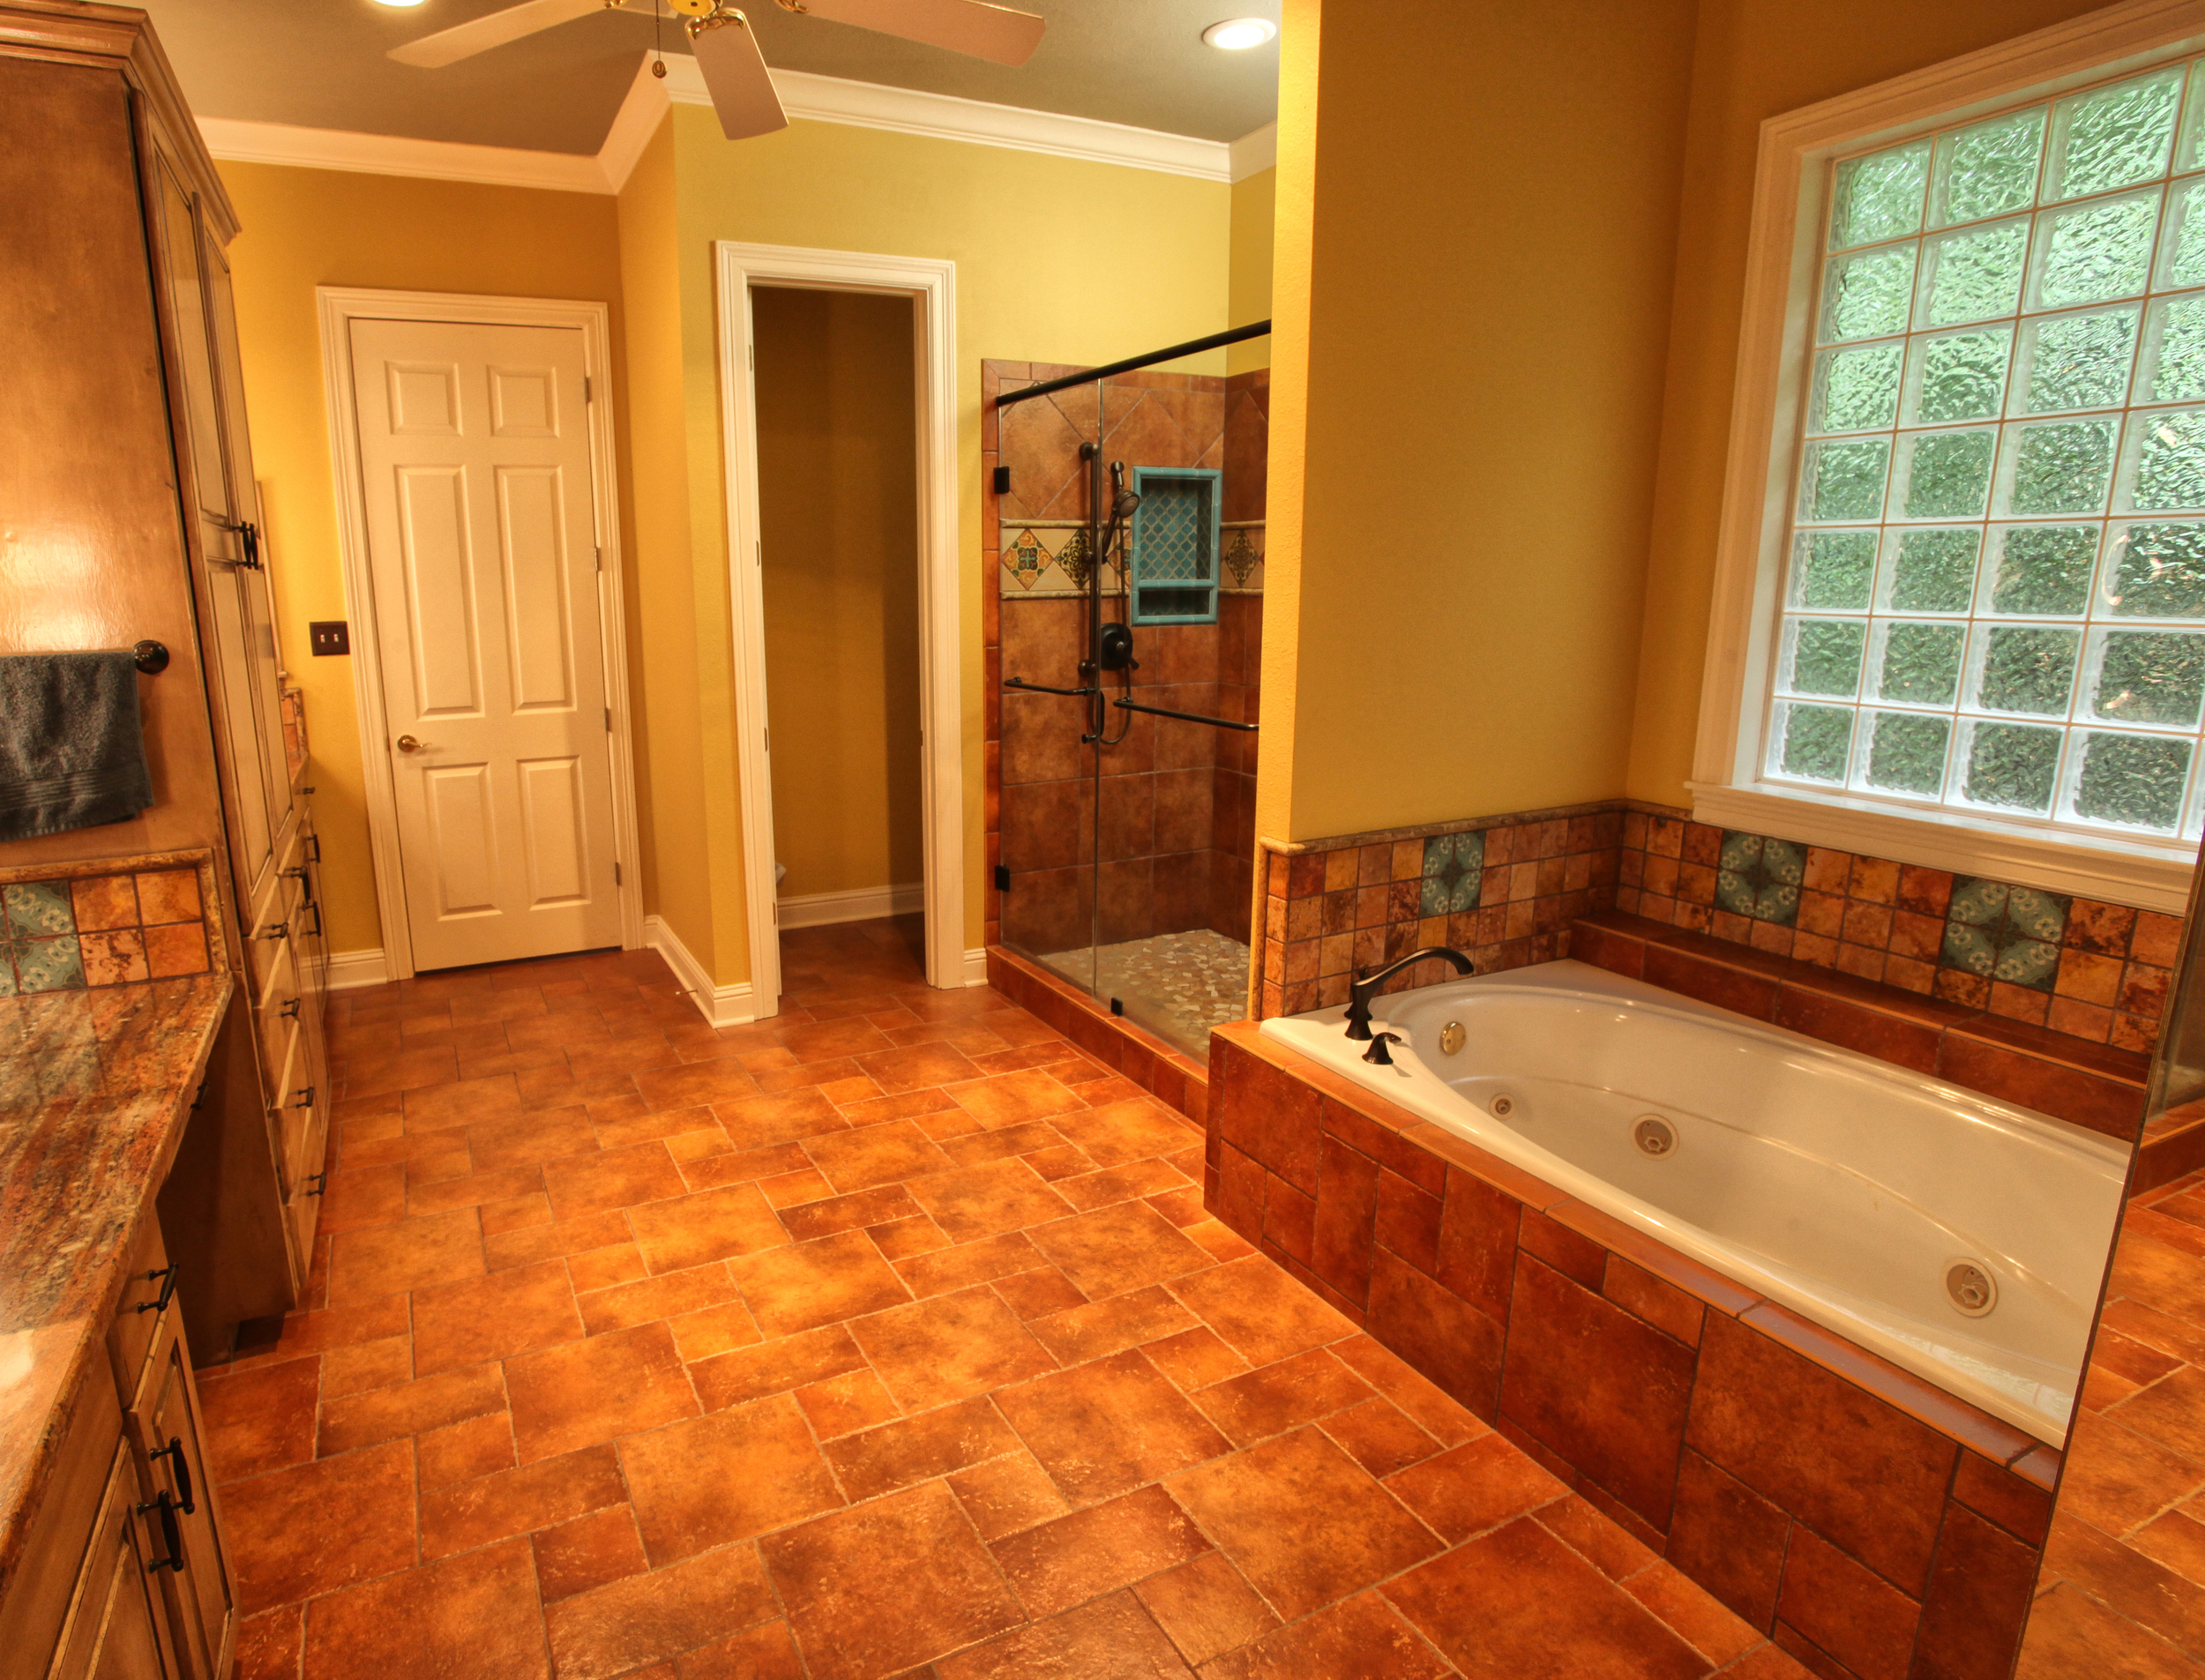 Master bath remodel - southwest style - ambiance interior design